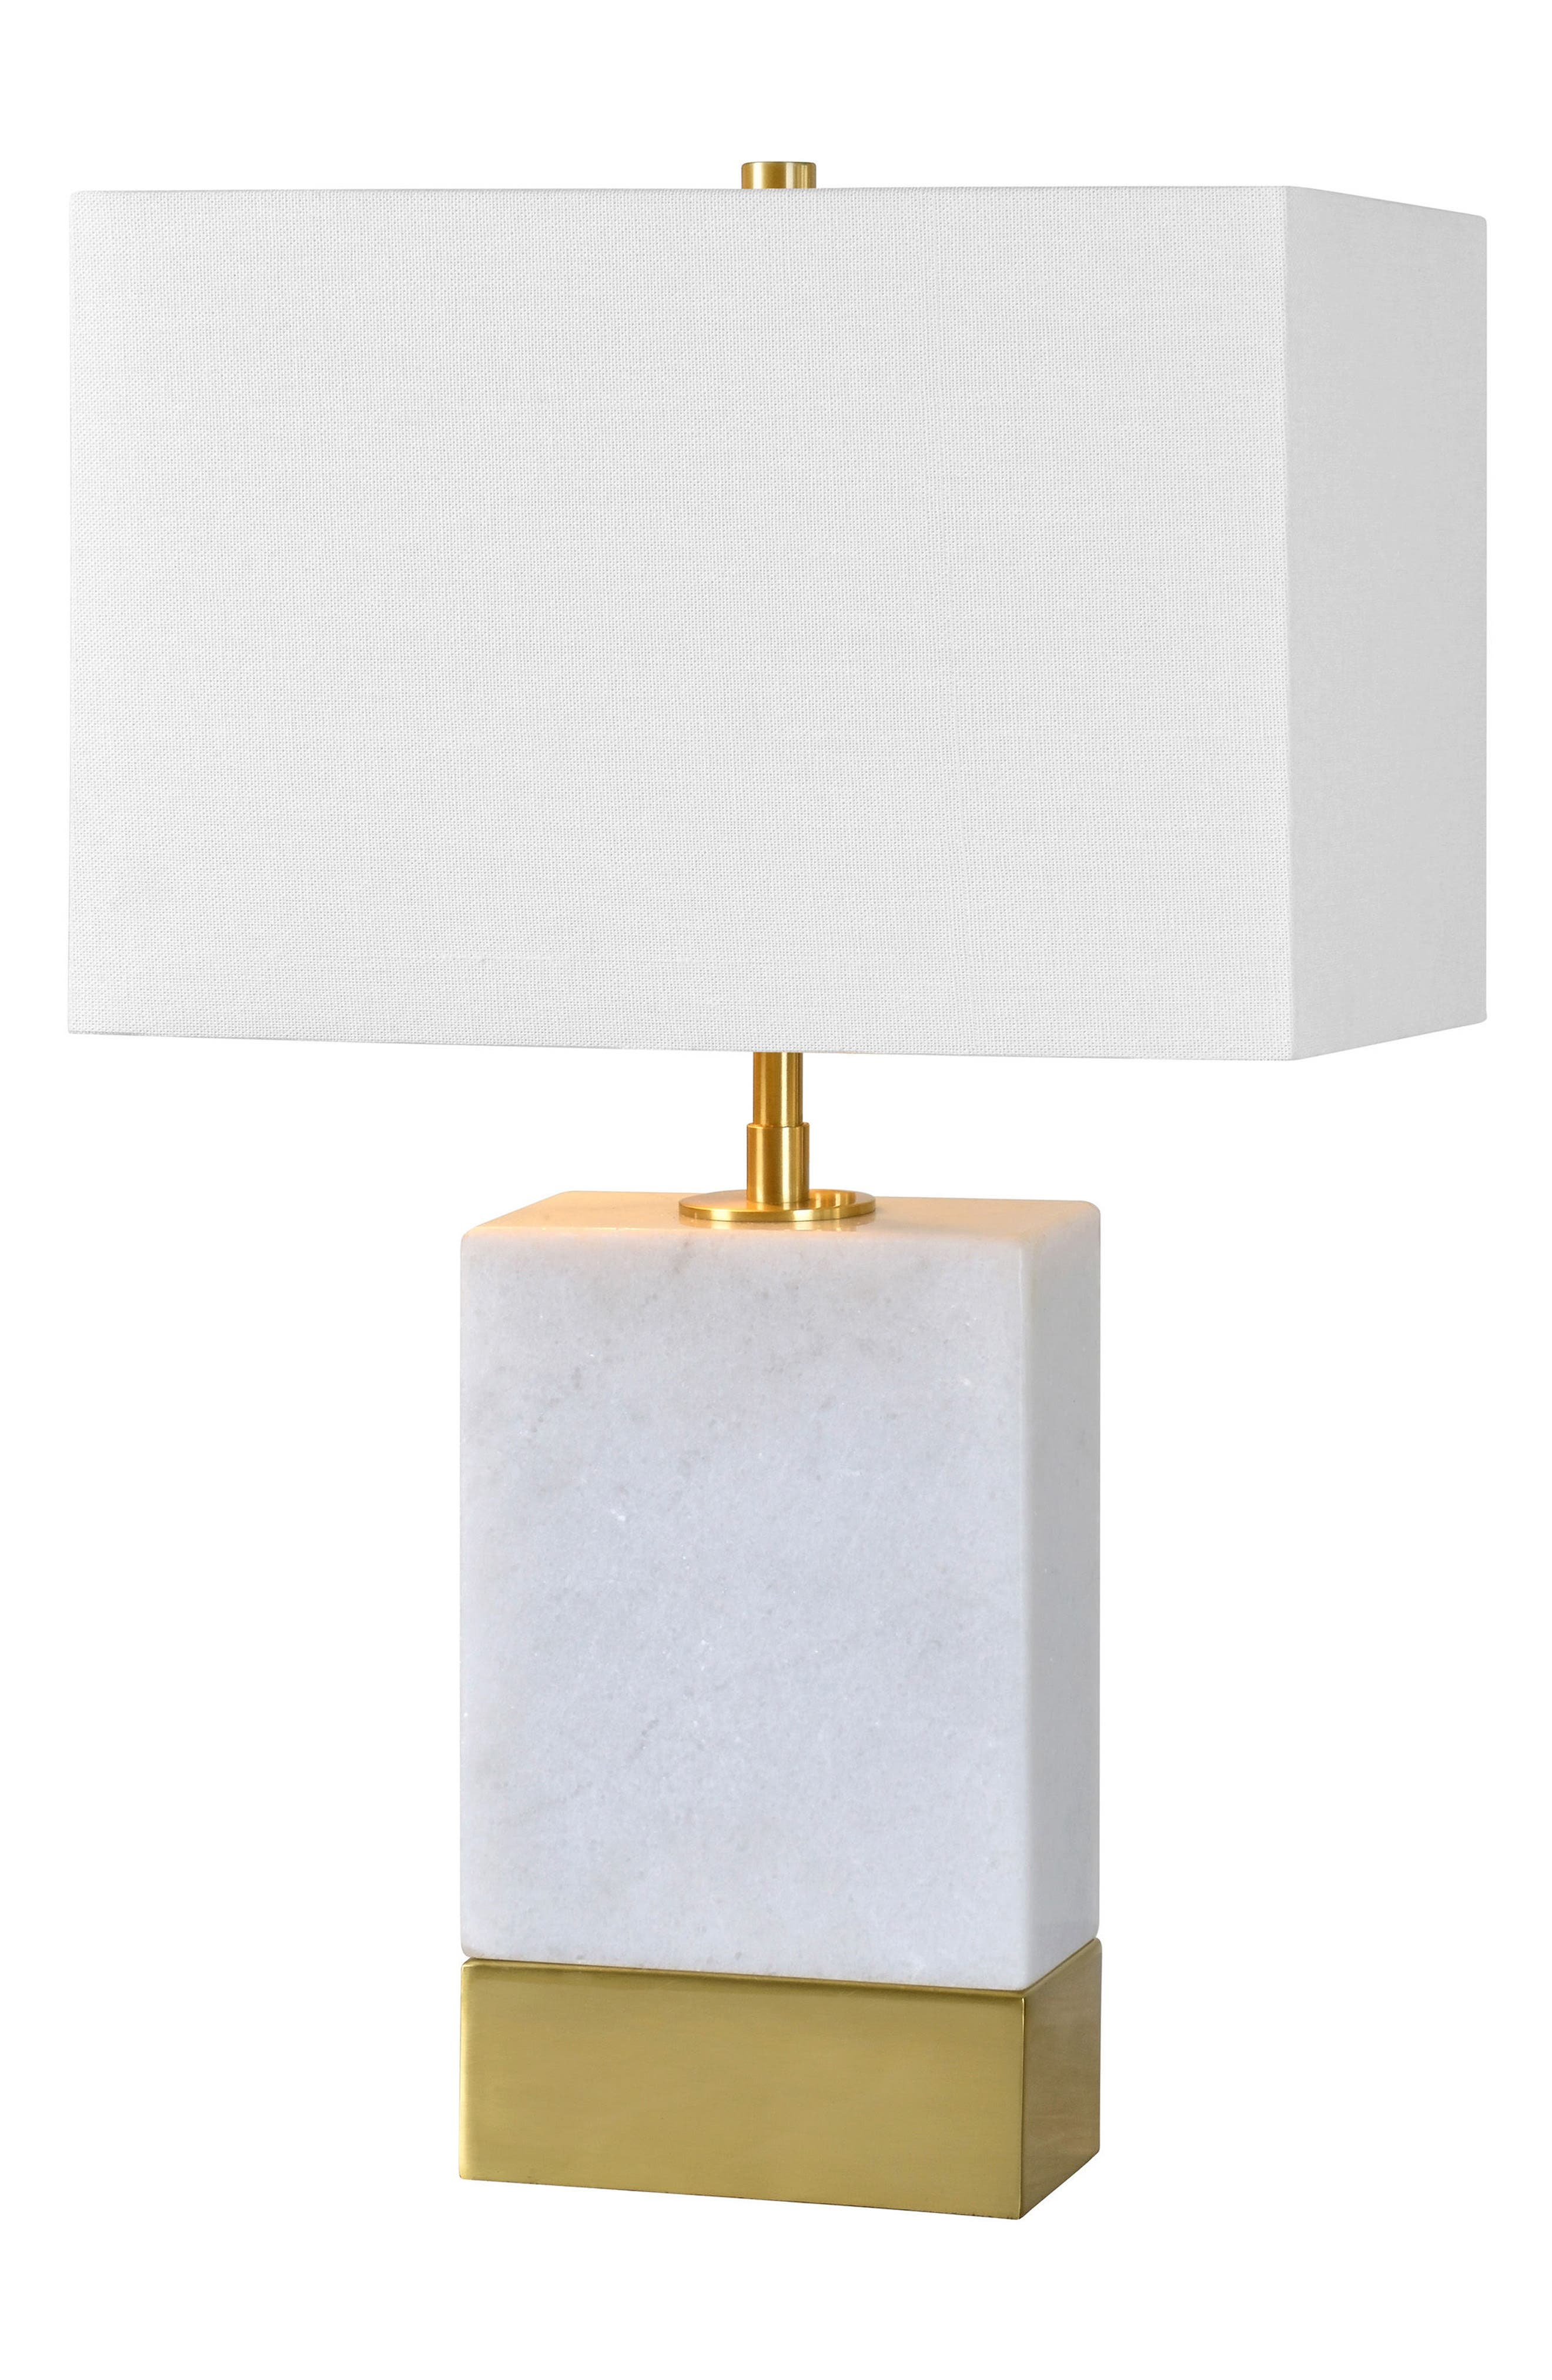 Lucent Table Lamp,                             Main thumbnail 1, color,                             Antique Gold/ White